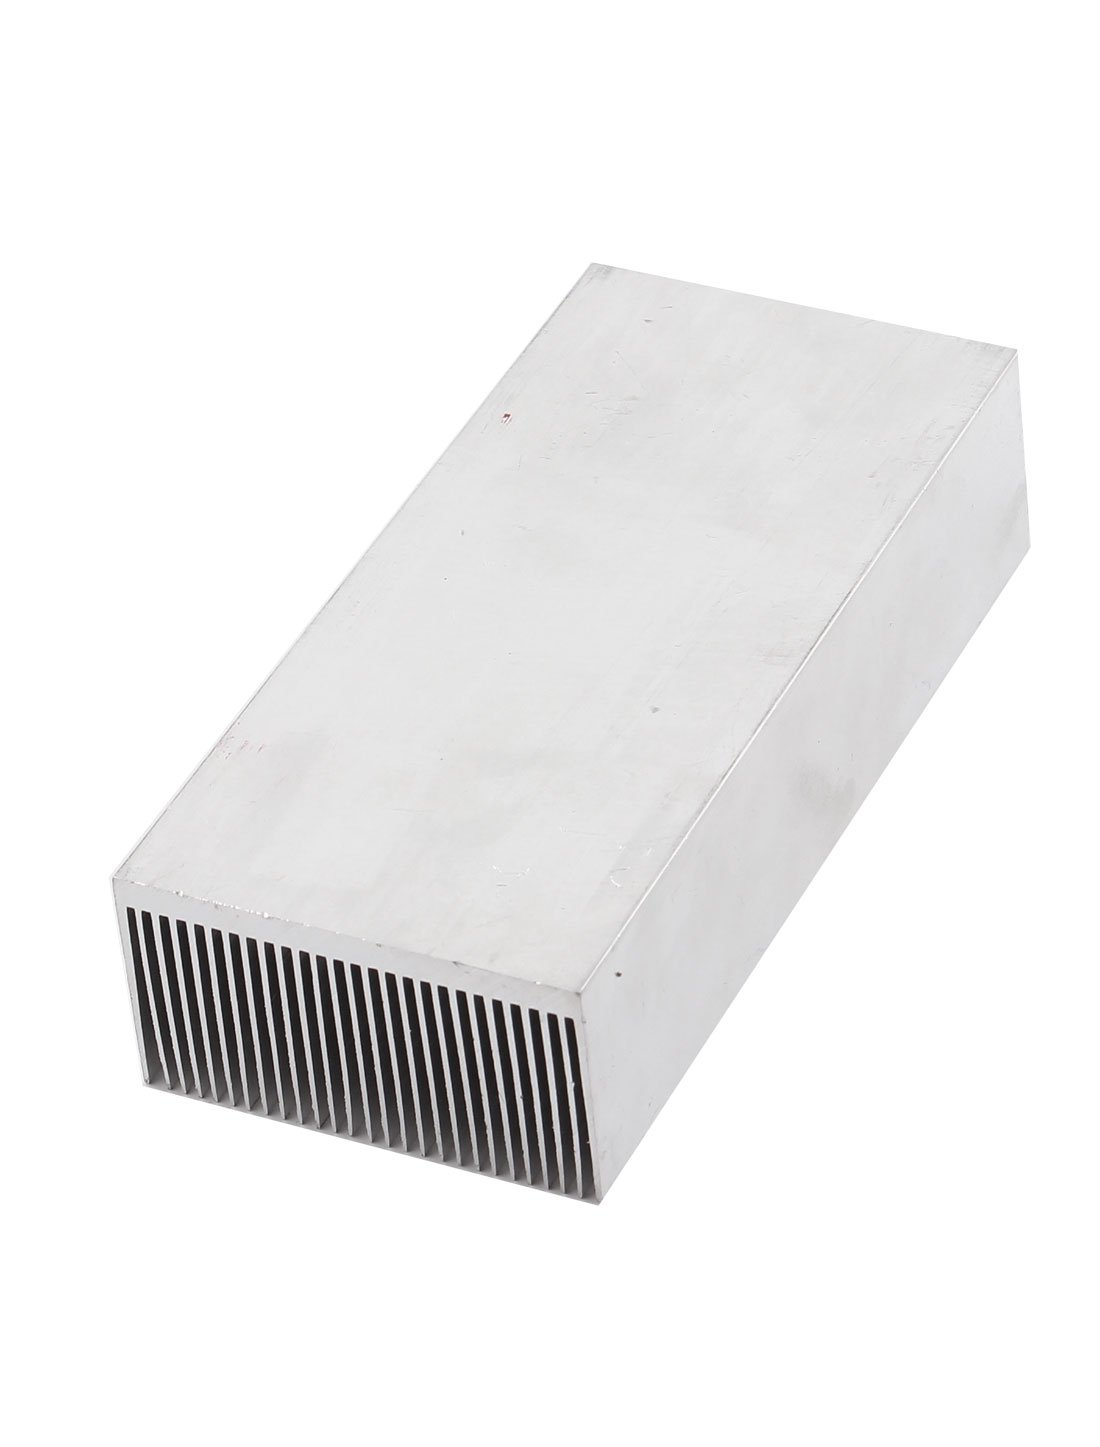 Uxcell a14111400ux0256 uxcell Aluminum Heat Radiator Heatsink Cooling Fan 150x69x37mm Silver Tone by uxcell (Image #2)